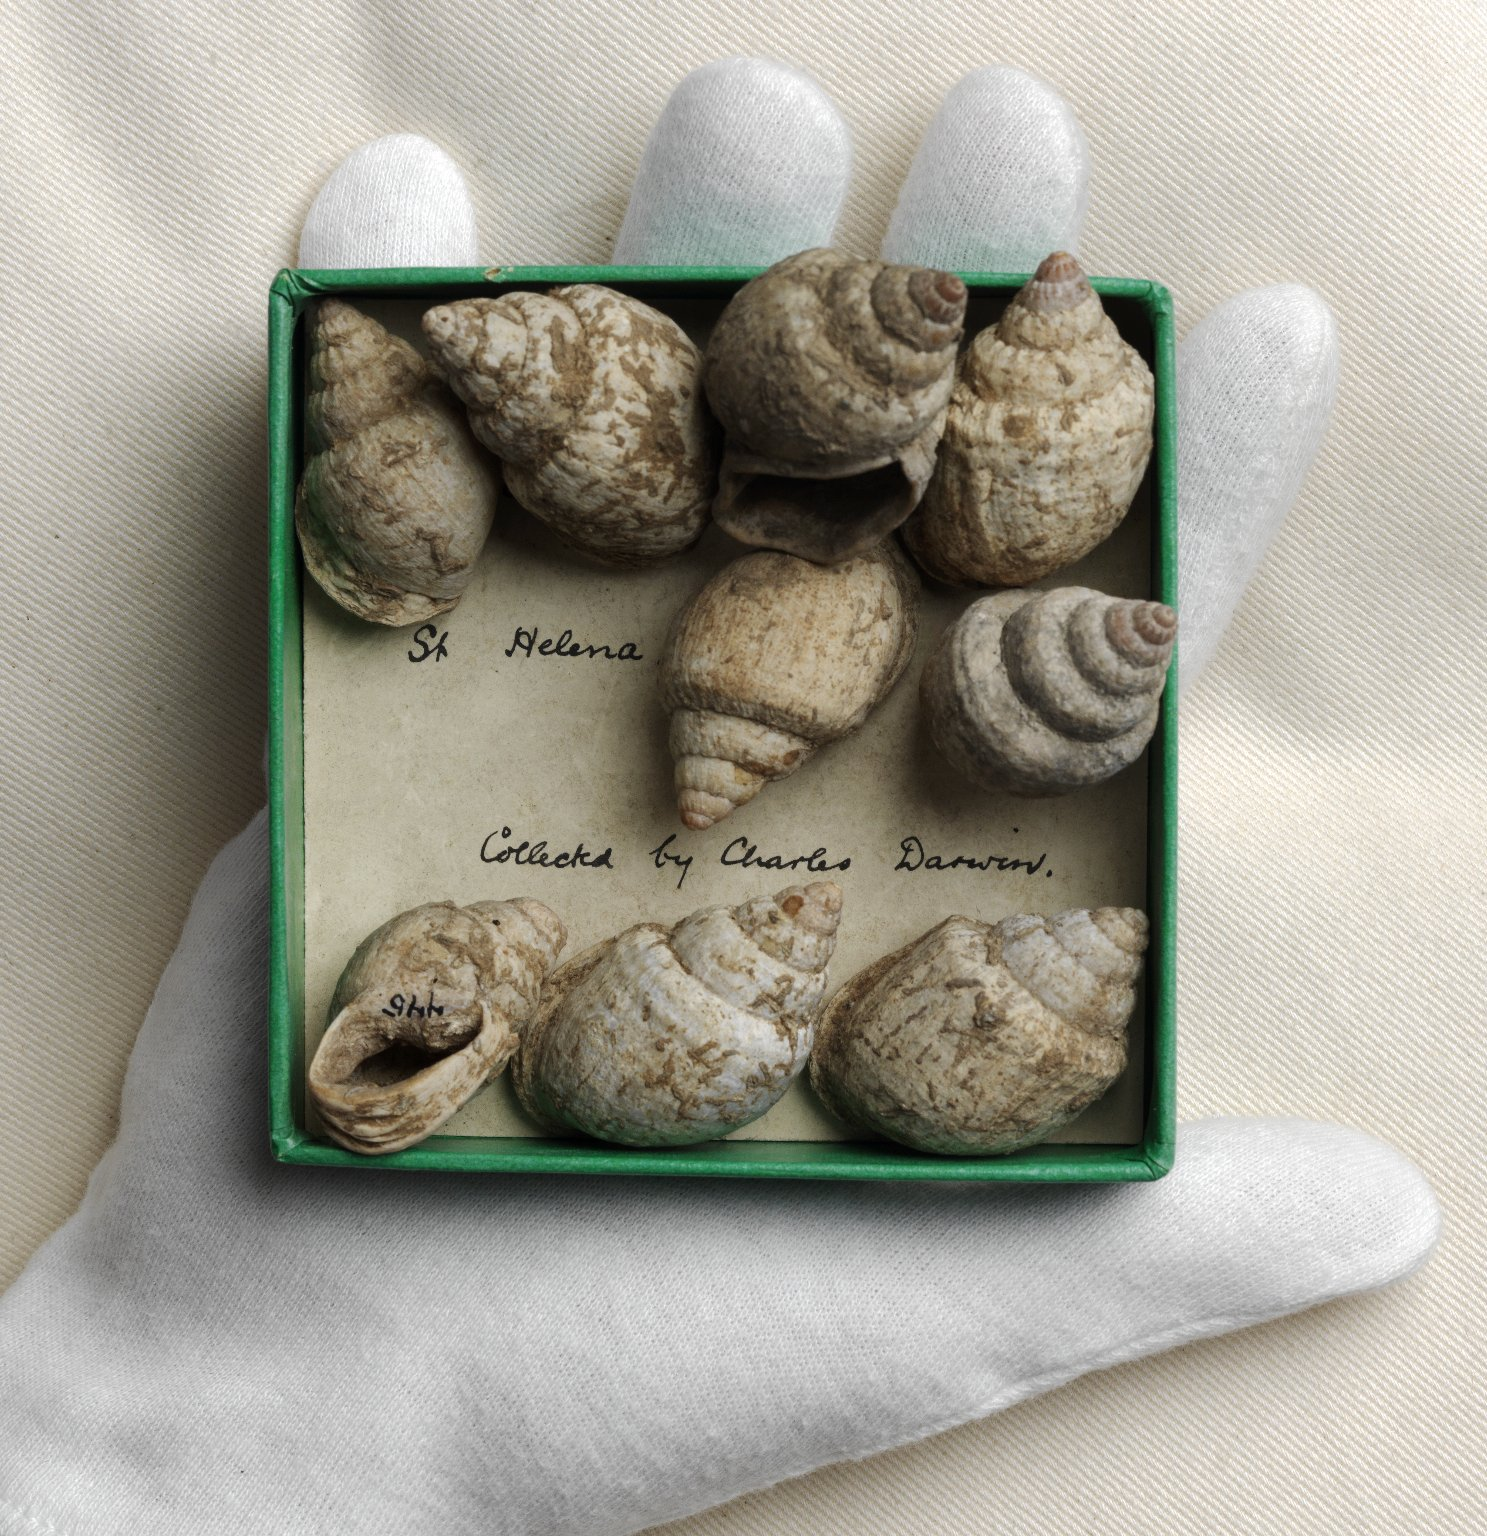 A hand holding the nine gastropods in a box